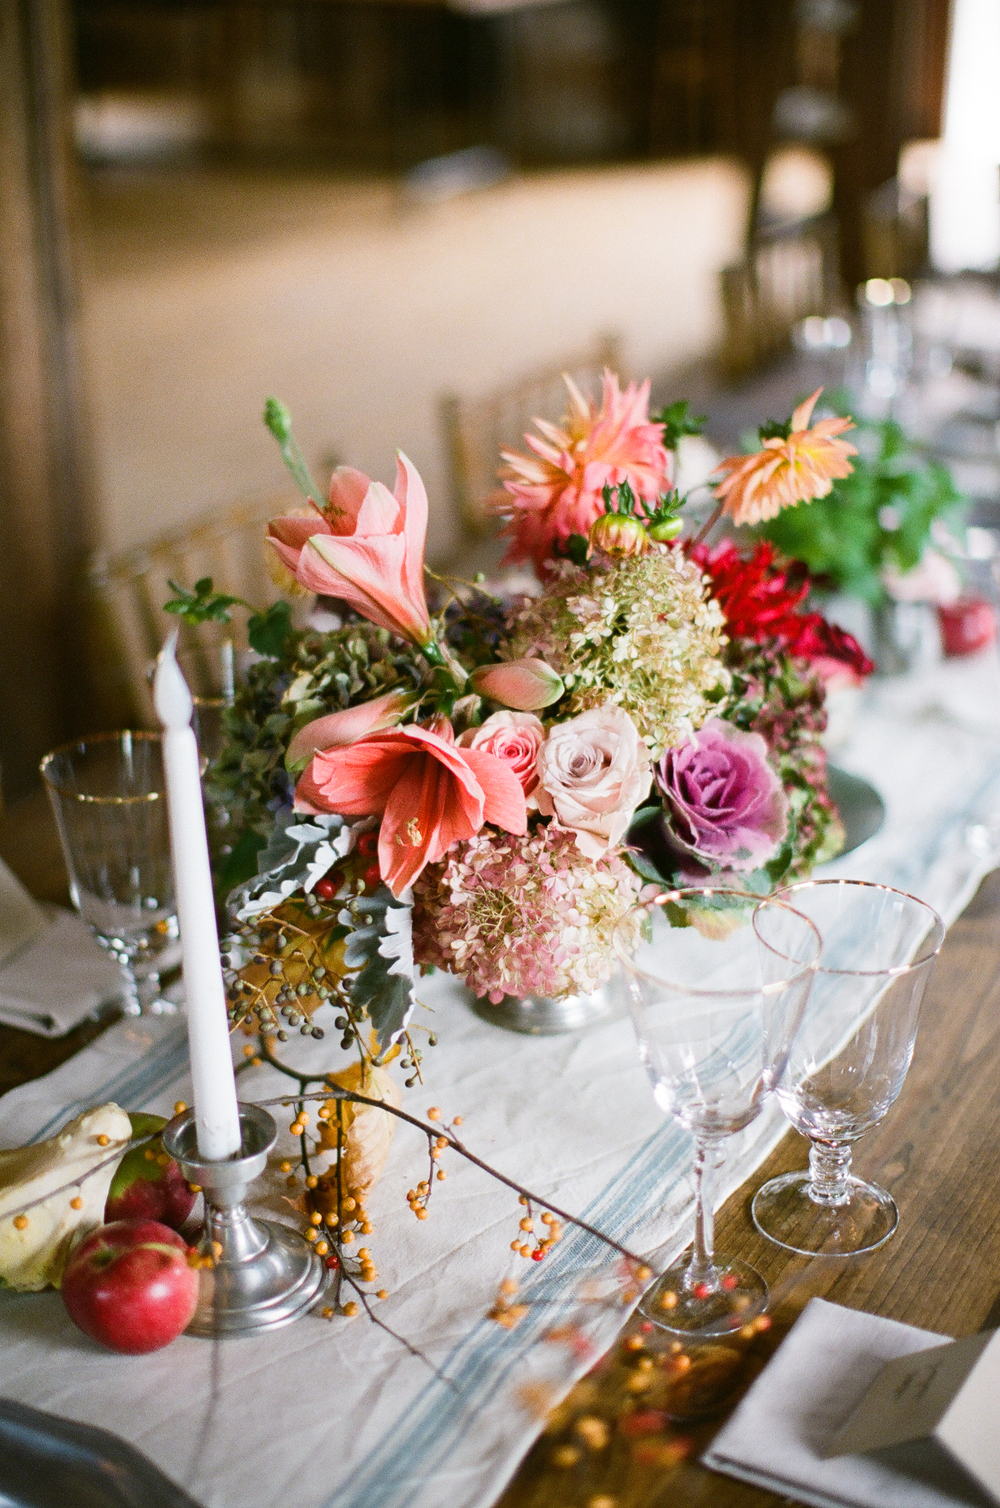 Maine Seasons Events, Autumn wedding photo by Meredith Perdue.jpg